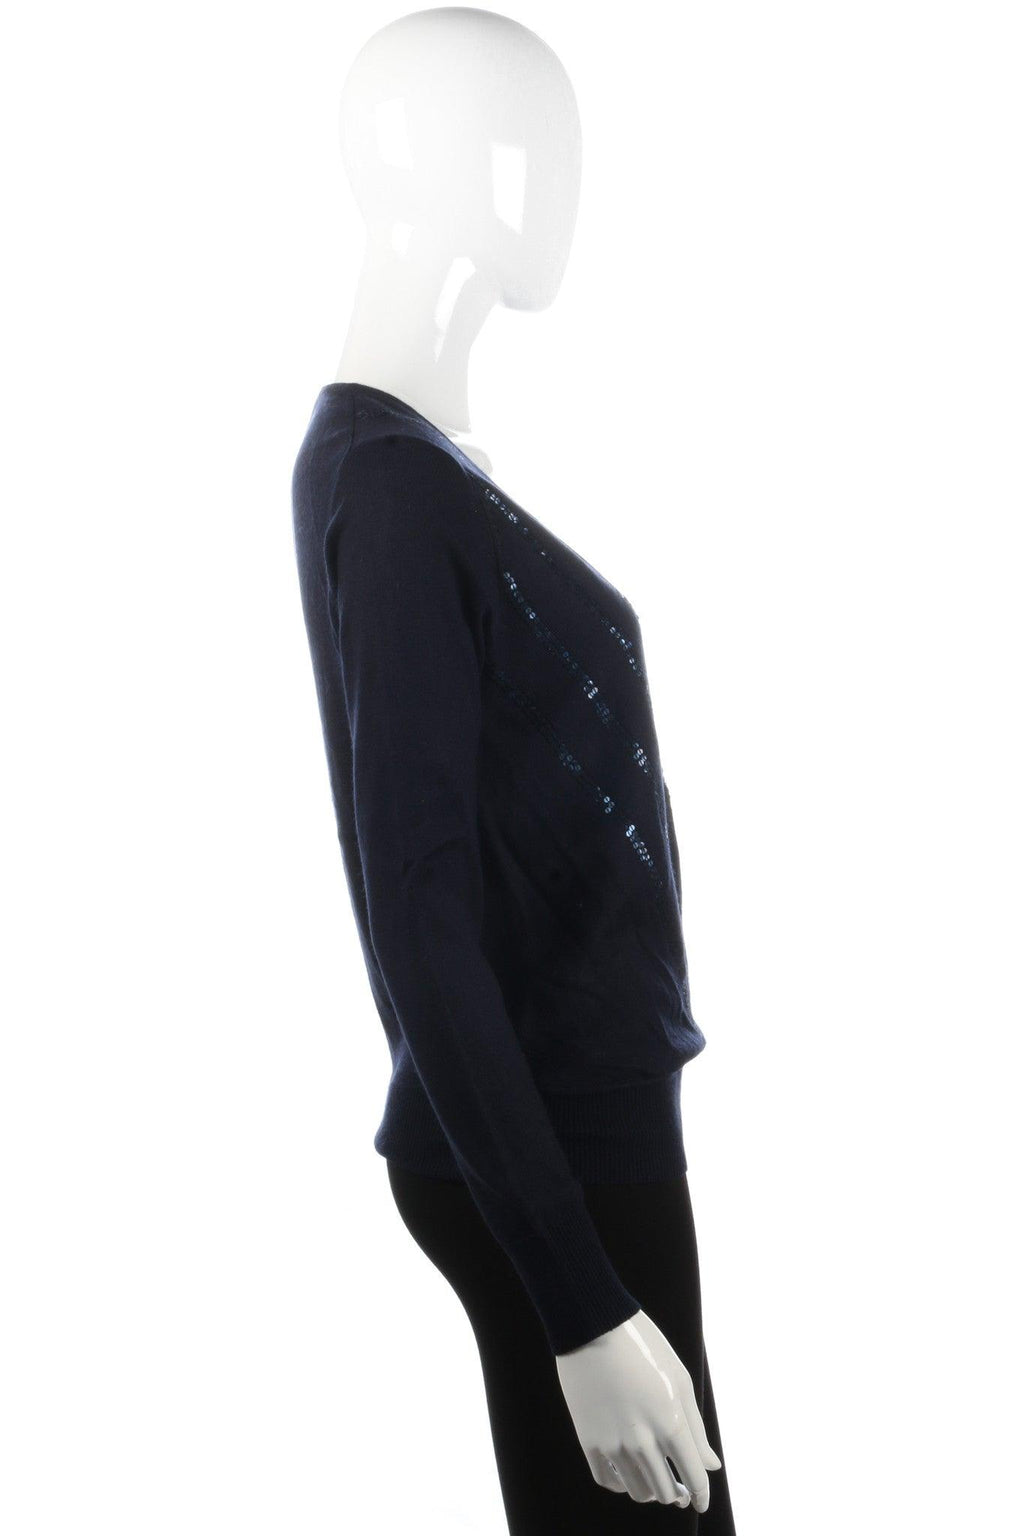 Cotswold Collections silk and cashmere dark blue jumper with sequins size 8